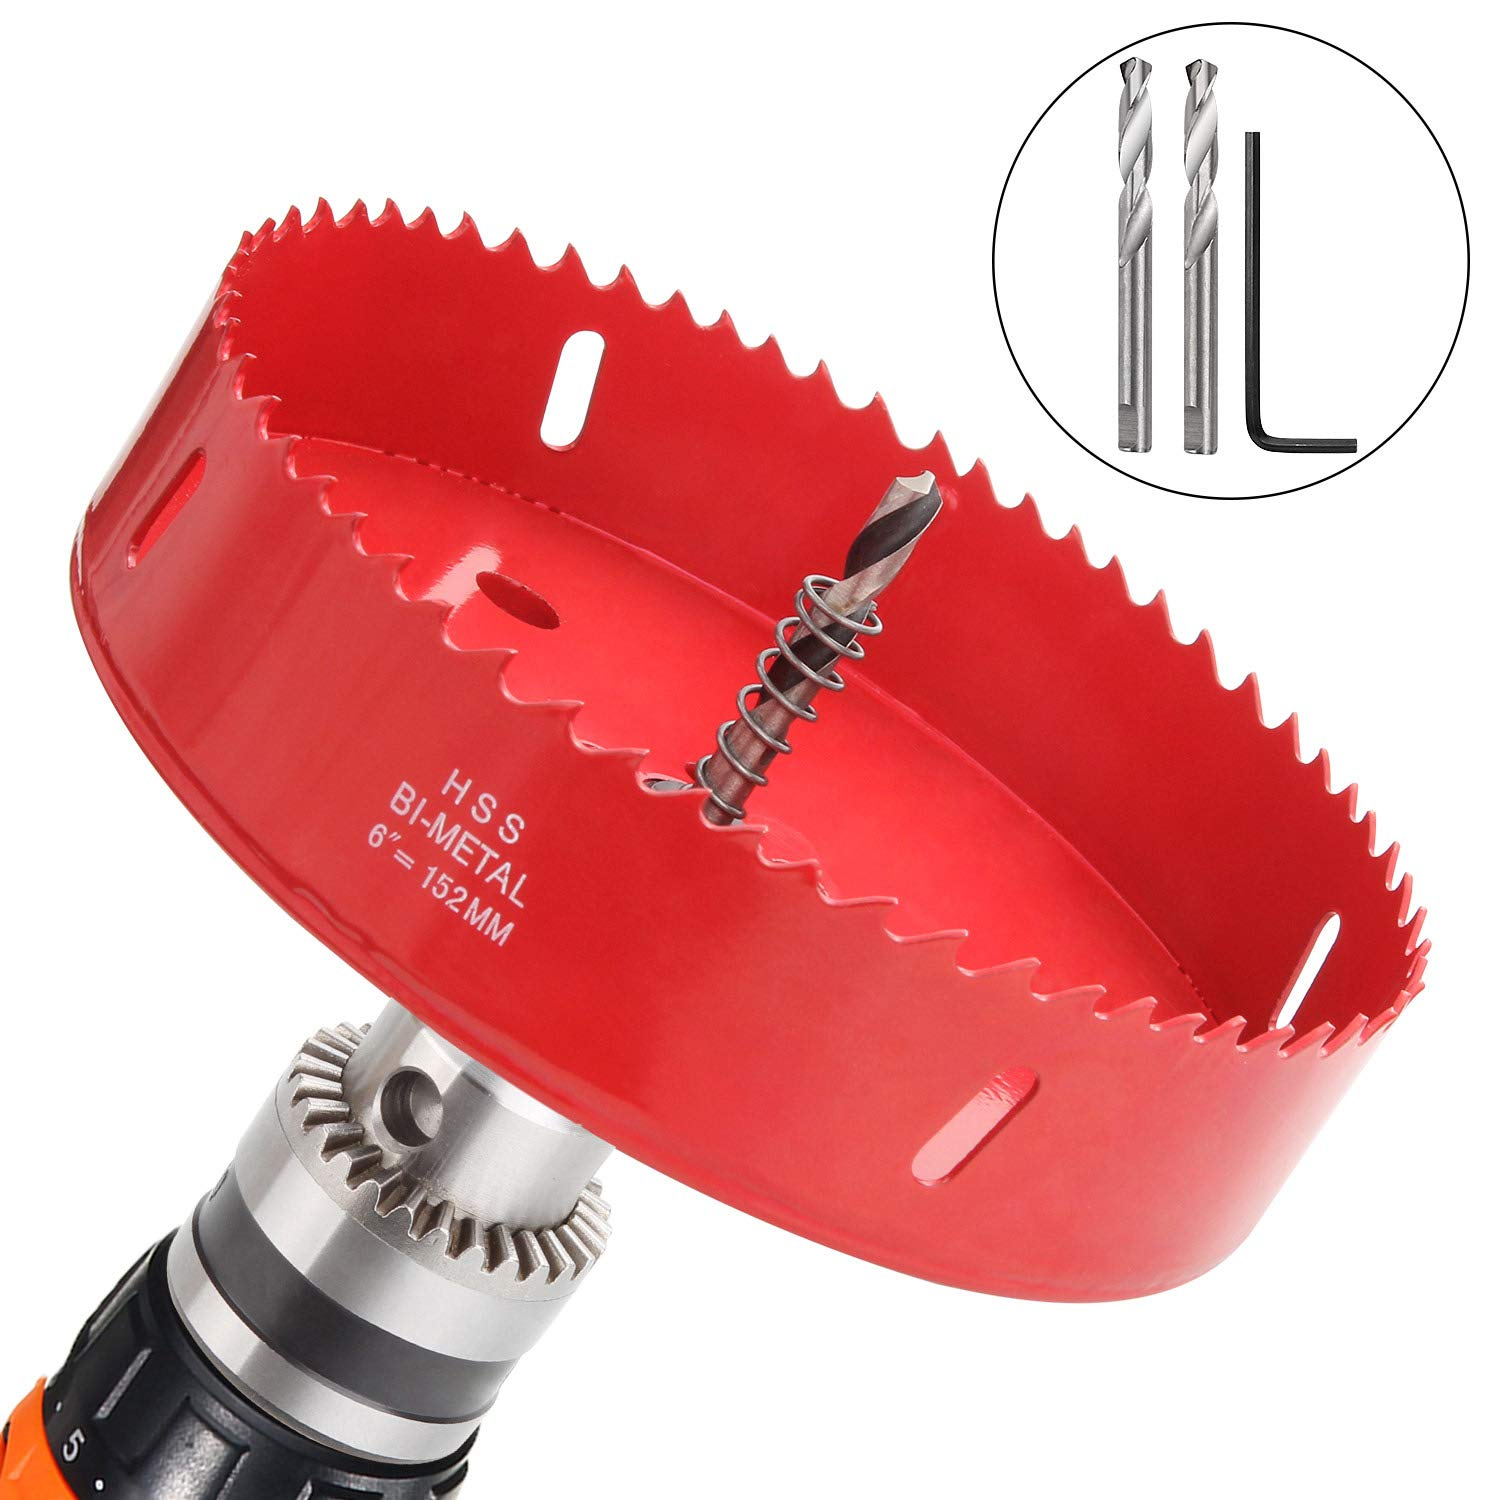 6 inch Hole Saw Blade for Cornhole Boards Corn Hole Drilling Cutter 152mm in Diameter BI-Metal Heavy Duty Steel & Hex Shank Drill Bit Adapter By STARVAST for Cornhole Game, Home Improvement (Red)